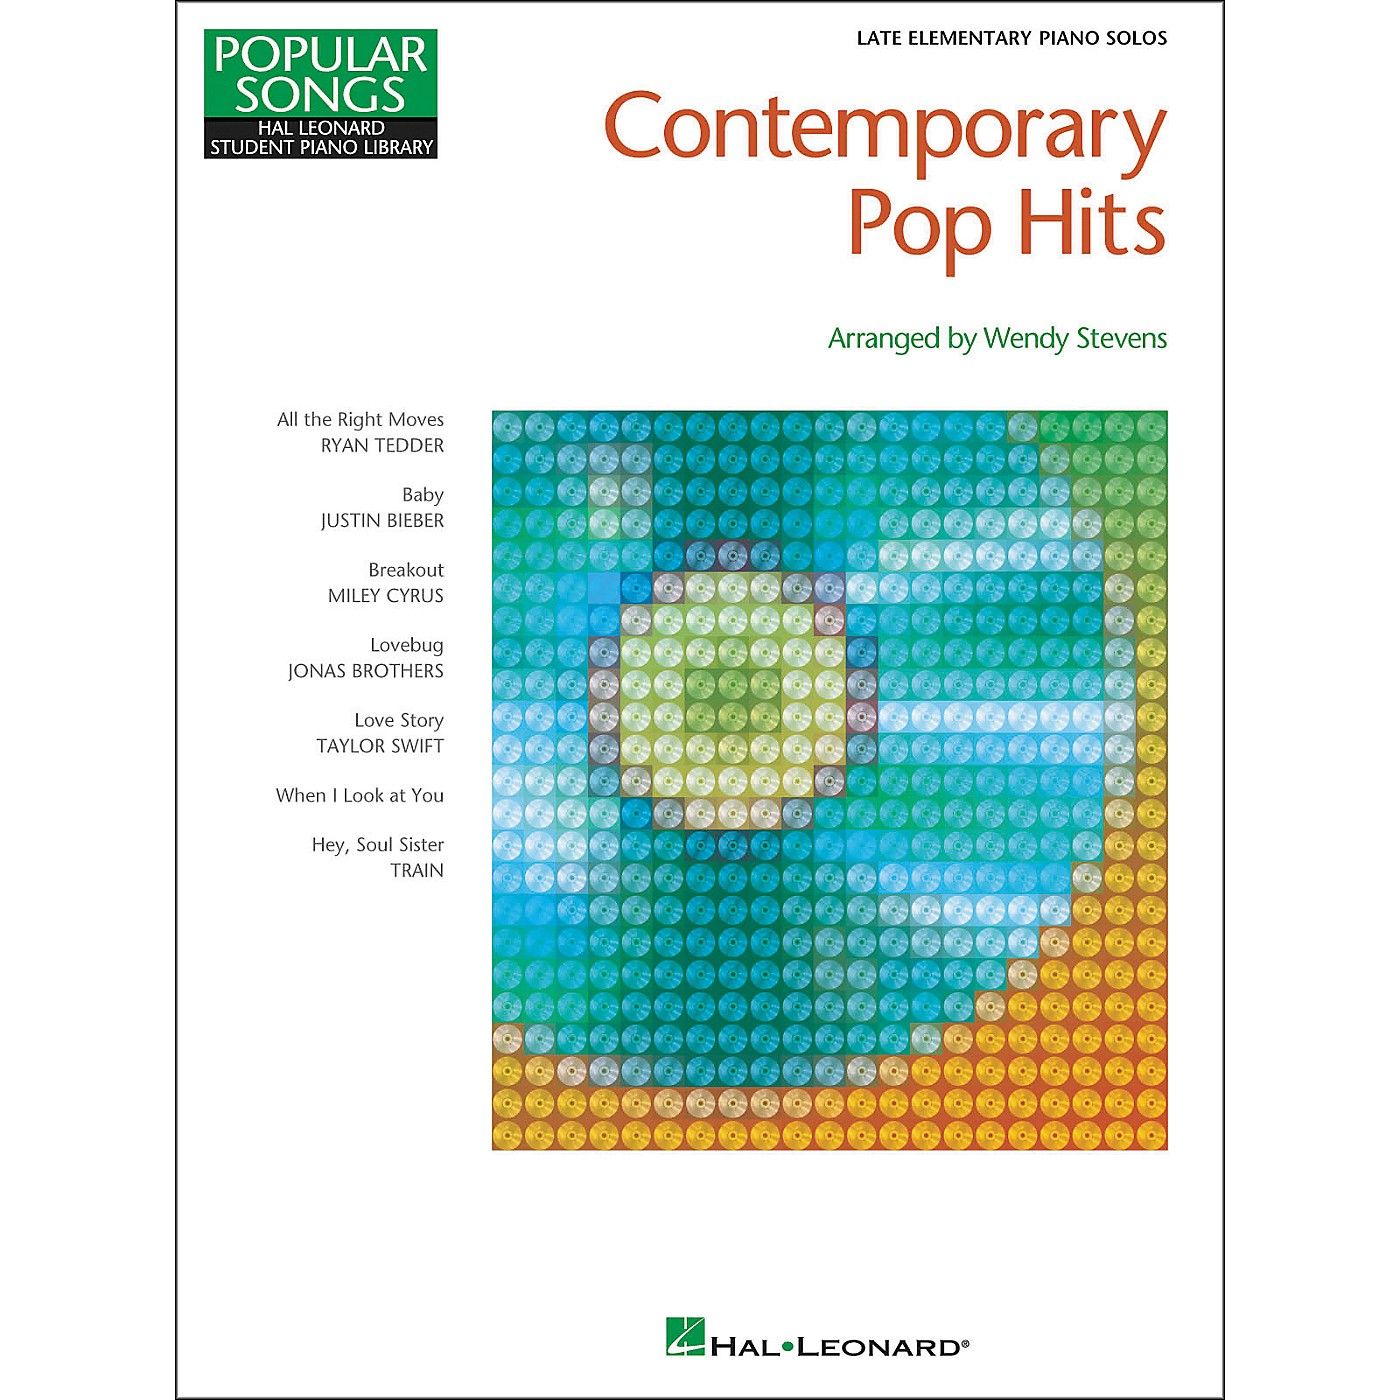 Hal Leonard Contemporary Pop Hits - Late Elementary Piano Solos Songbook thumbnail